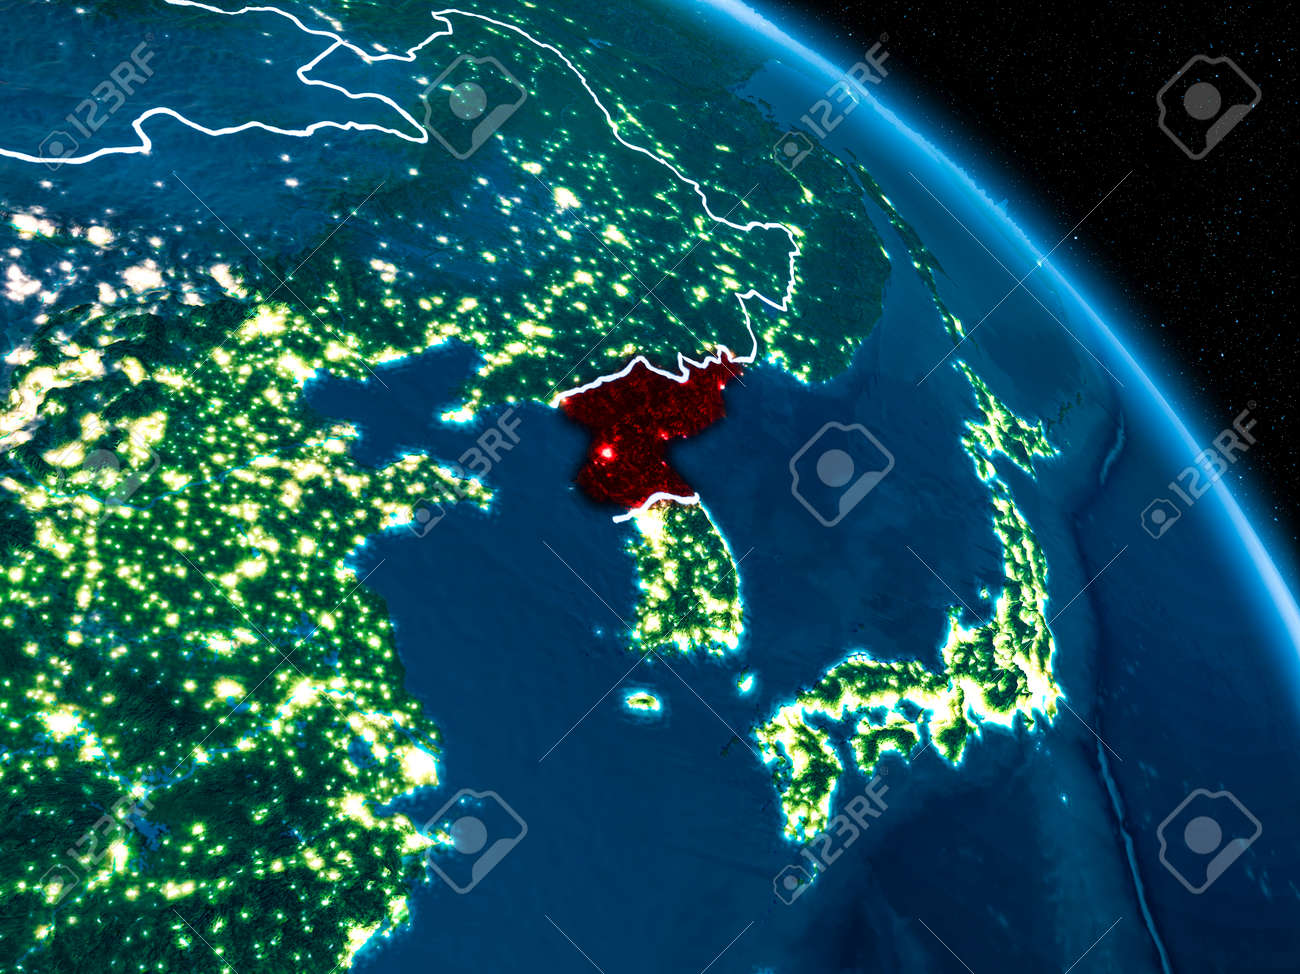 Stock Illustration on seoul korea at night, map of south north korean peninsula night, map of us at night, earth from satellite at night, texas satellite at night, map of south korea night, aerial view of north korea at night,